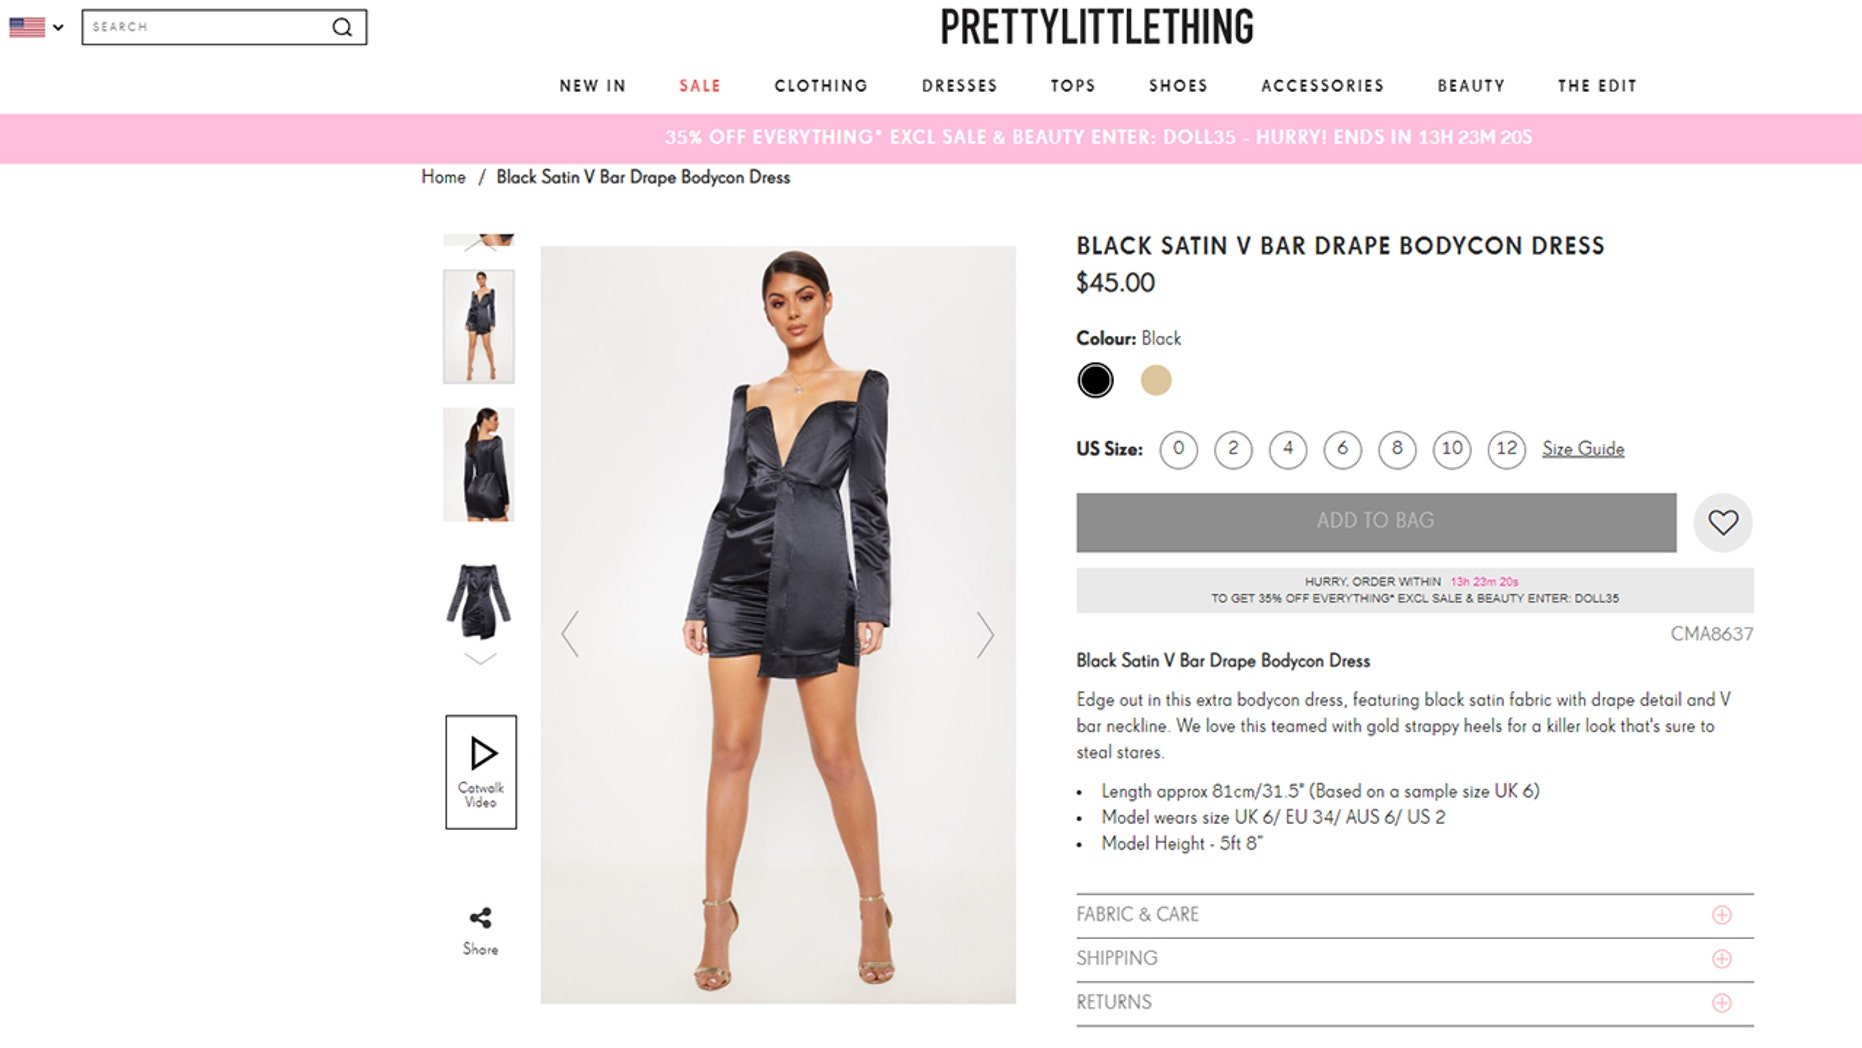 Niamh O'Donnell, from Mansfield, Nottingham, ordered $263 worth of goodies from online fashion retailer PrettyLittleThing.